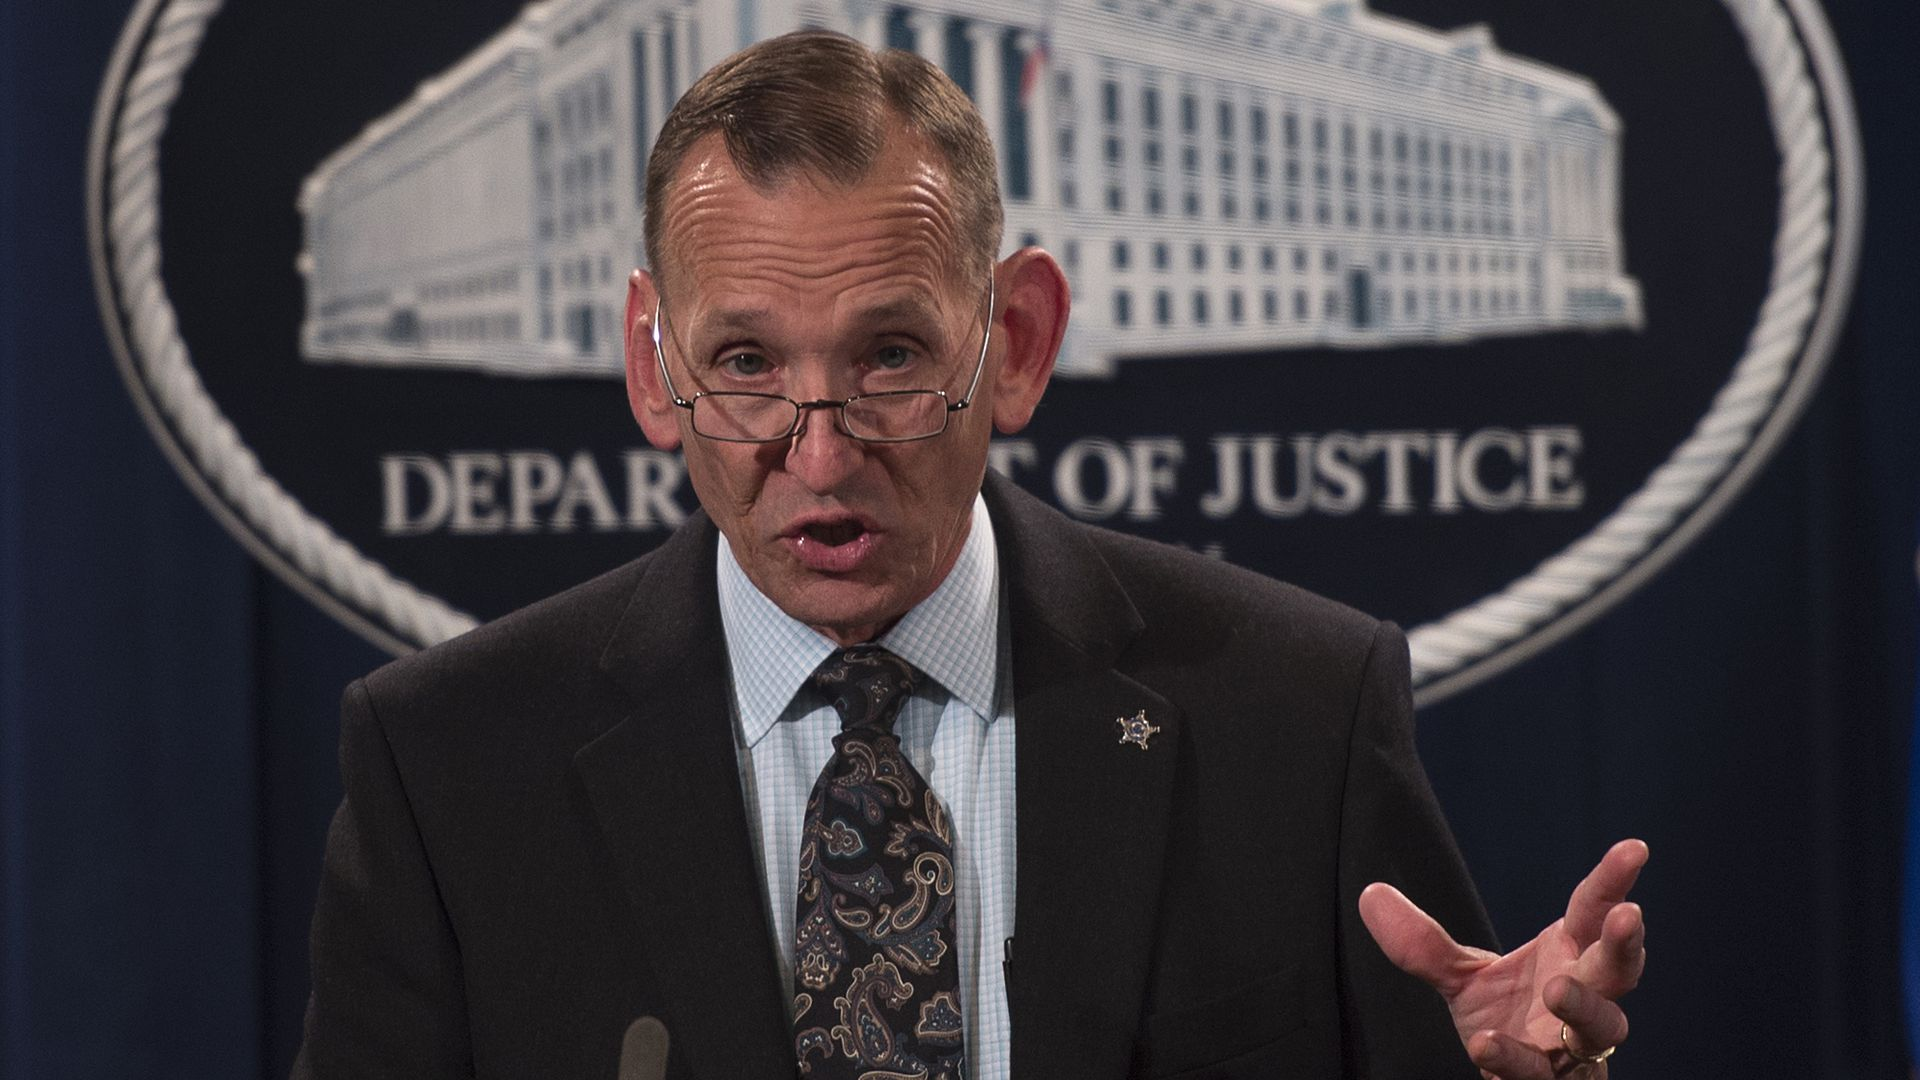 irector of the US Secret Service Randolph Alles speaks during a press conference at the Department of Justice